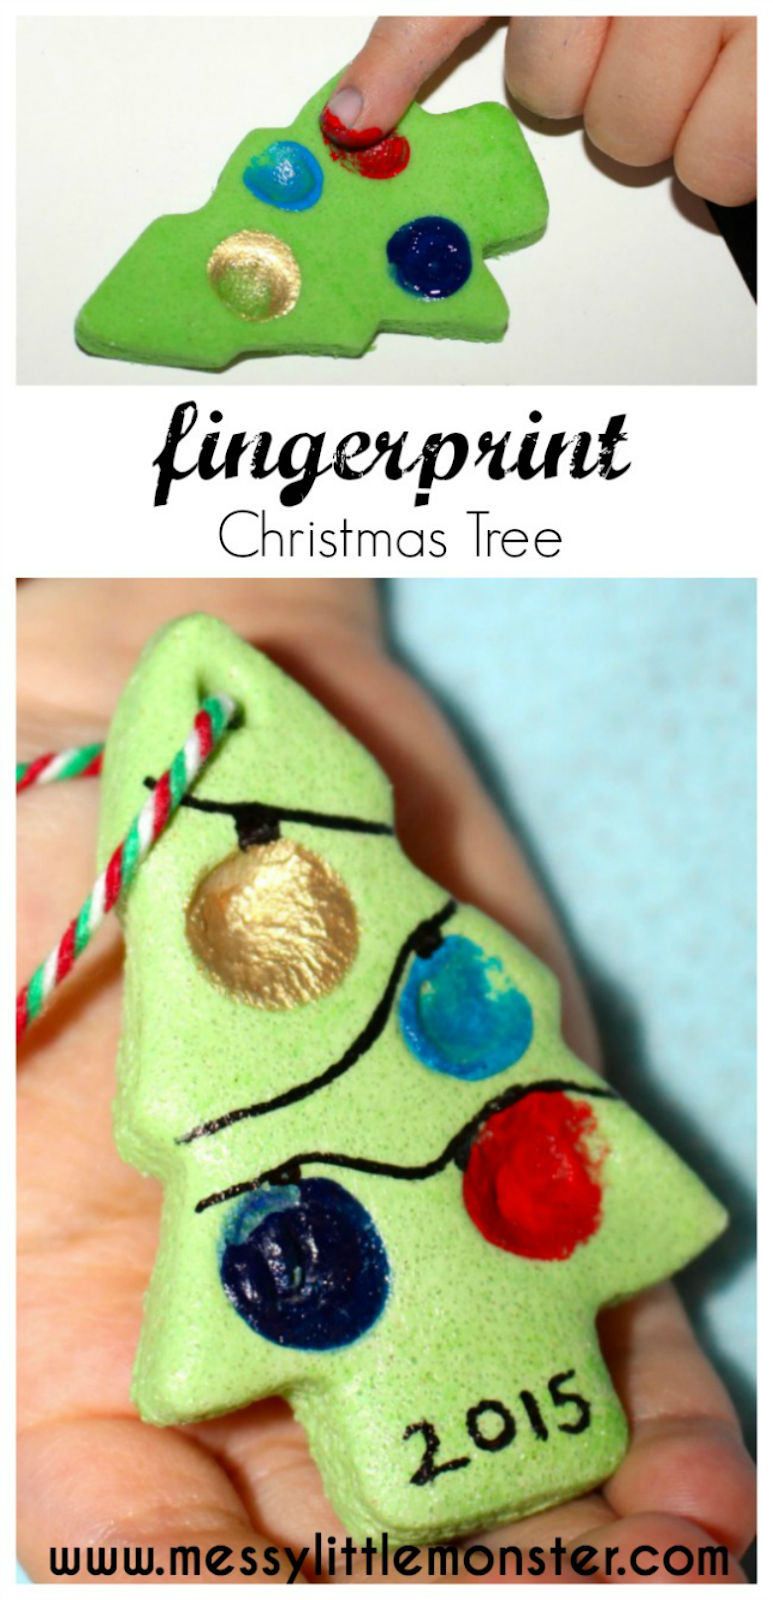 Fingerprint Christmas Tree - Salt Dough Ornament Recipe #christmascraftsforkidstomake